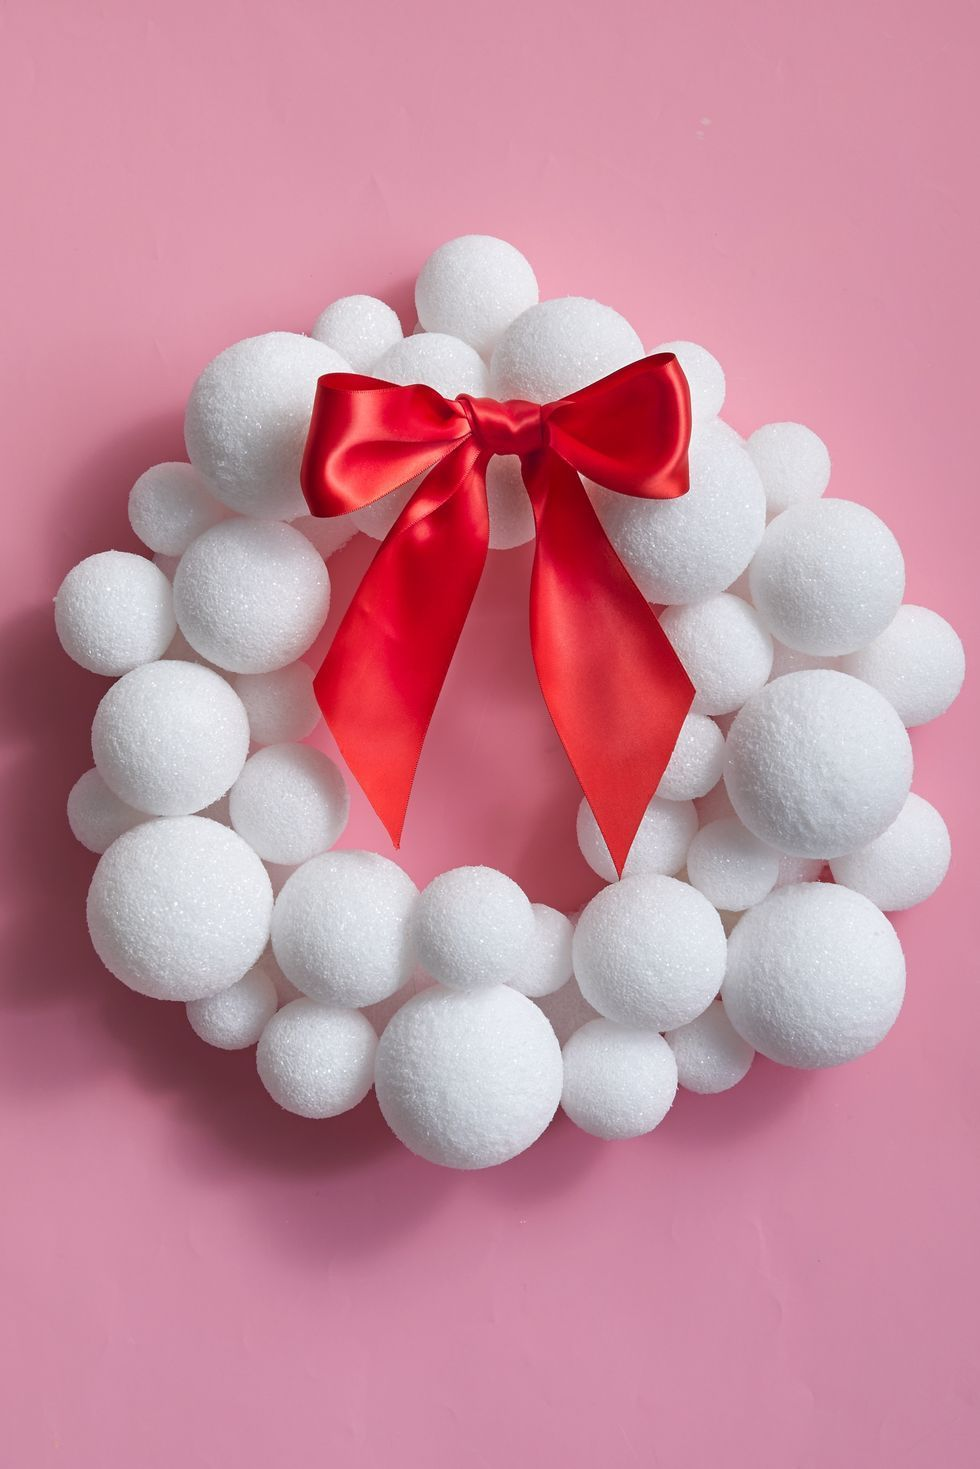 72 DIY Christmas Wreaths - How to Make a Holiday Wreath Craft